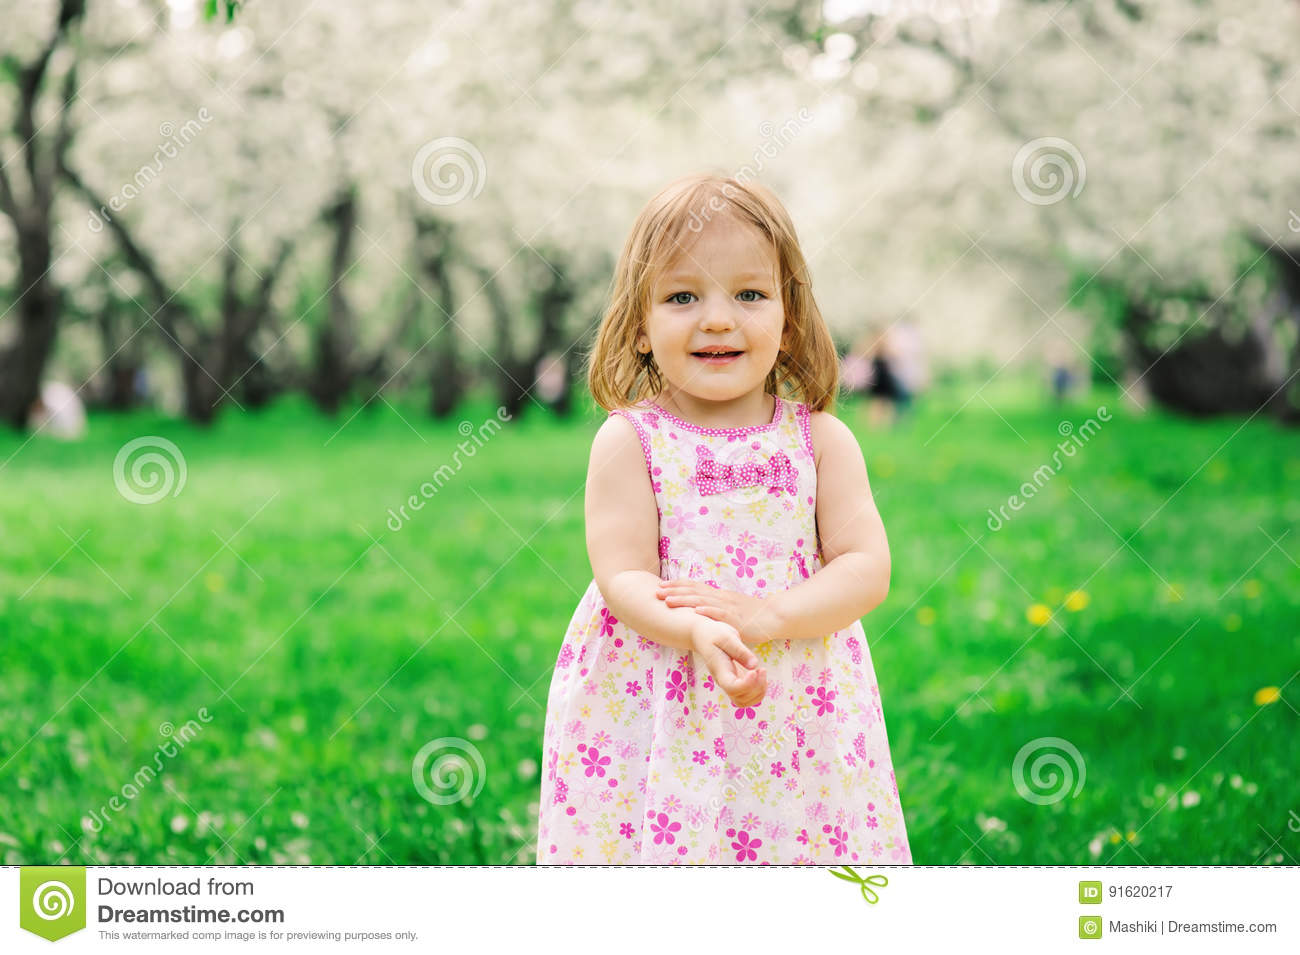 Spring portrait of cute little toddler girl in blue jeans dress walking in blooming park